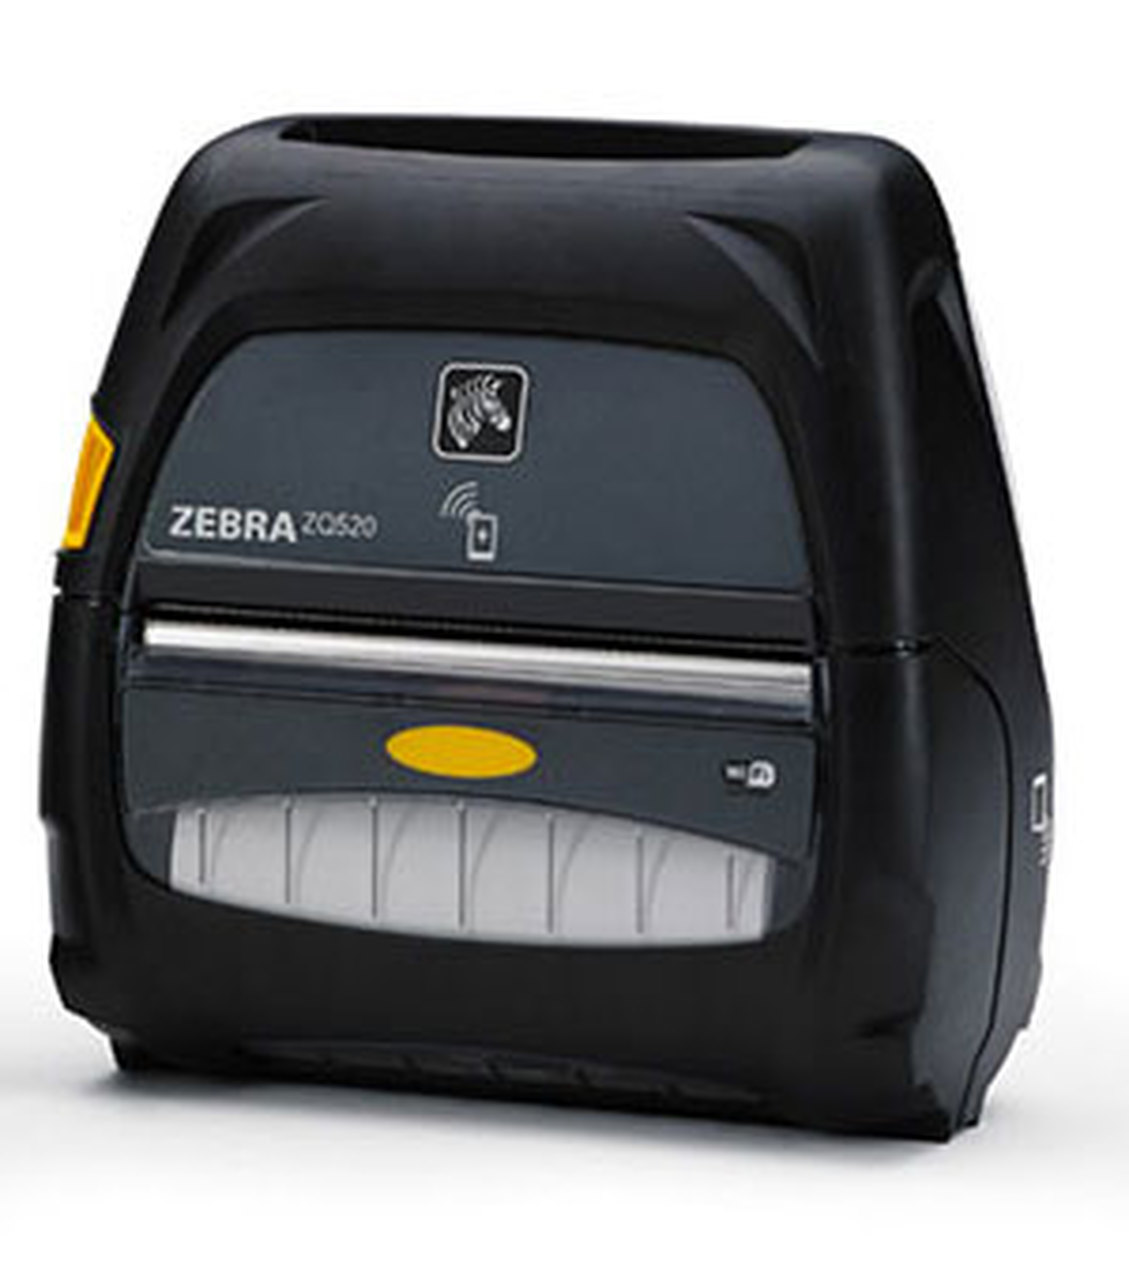 labels for Zebra ZQ520 printer